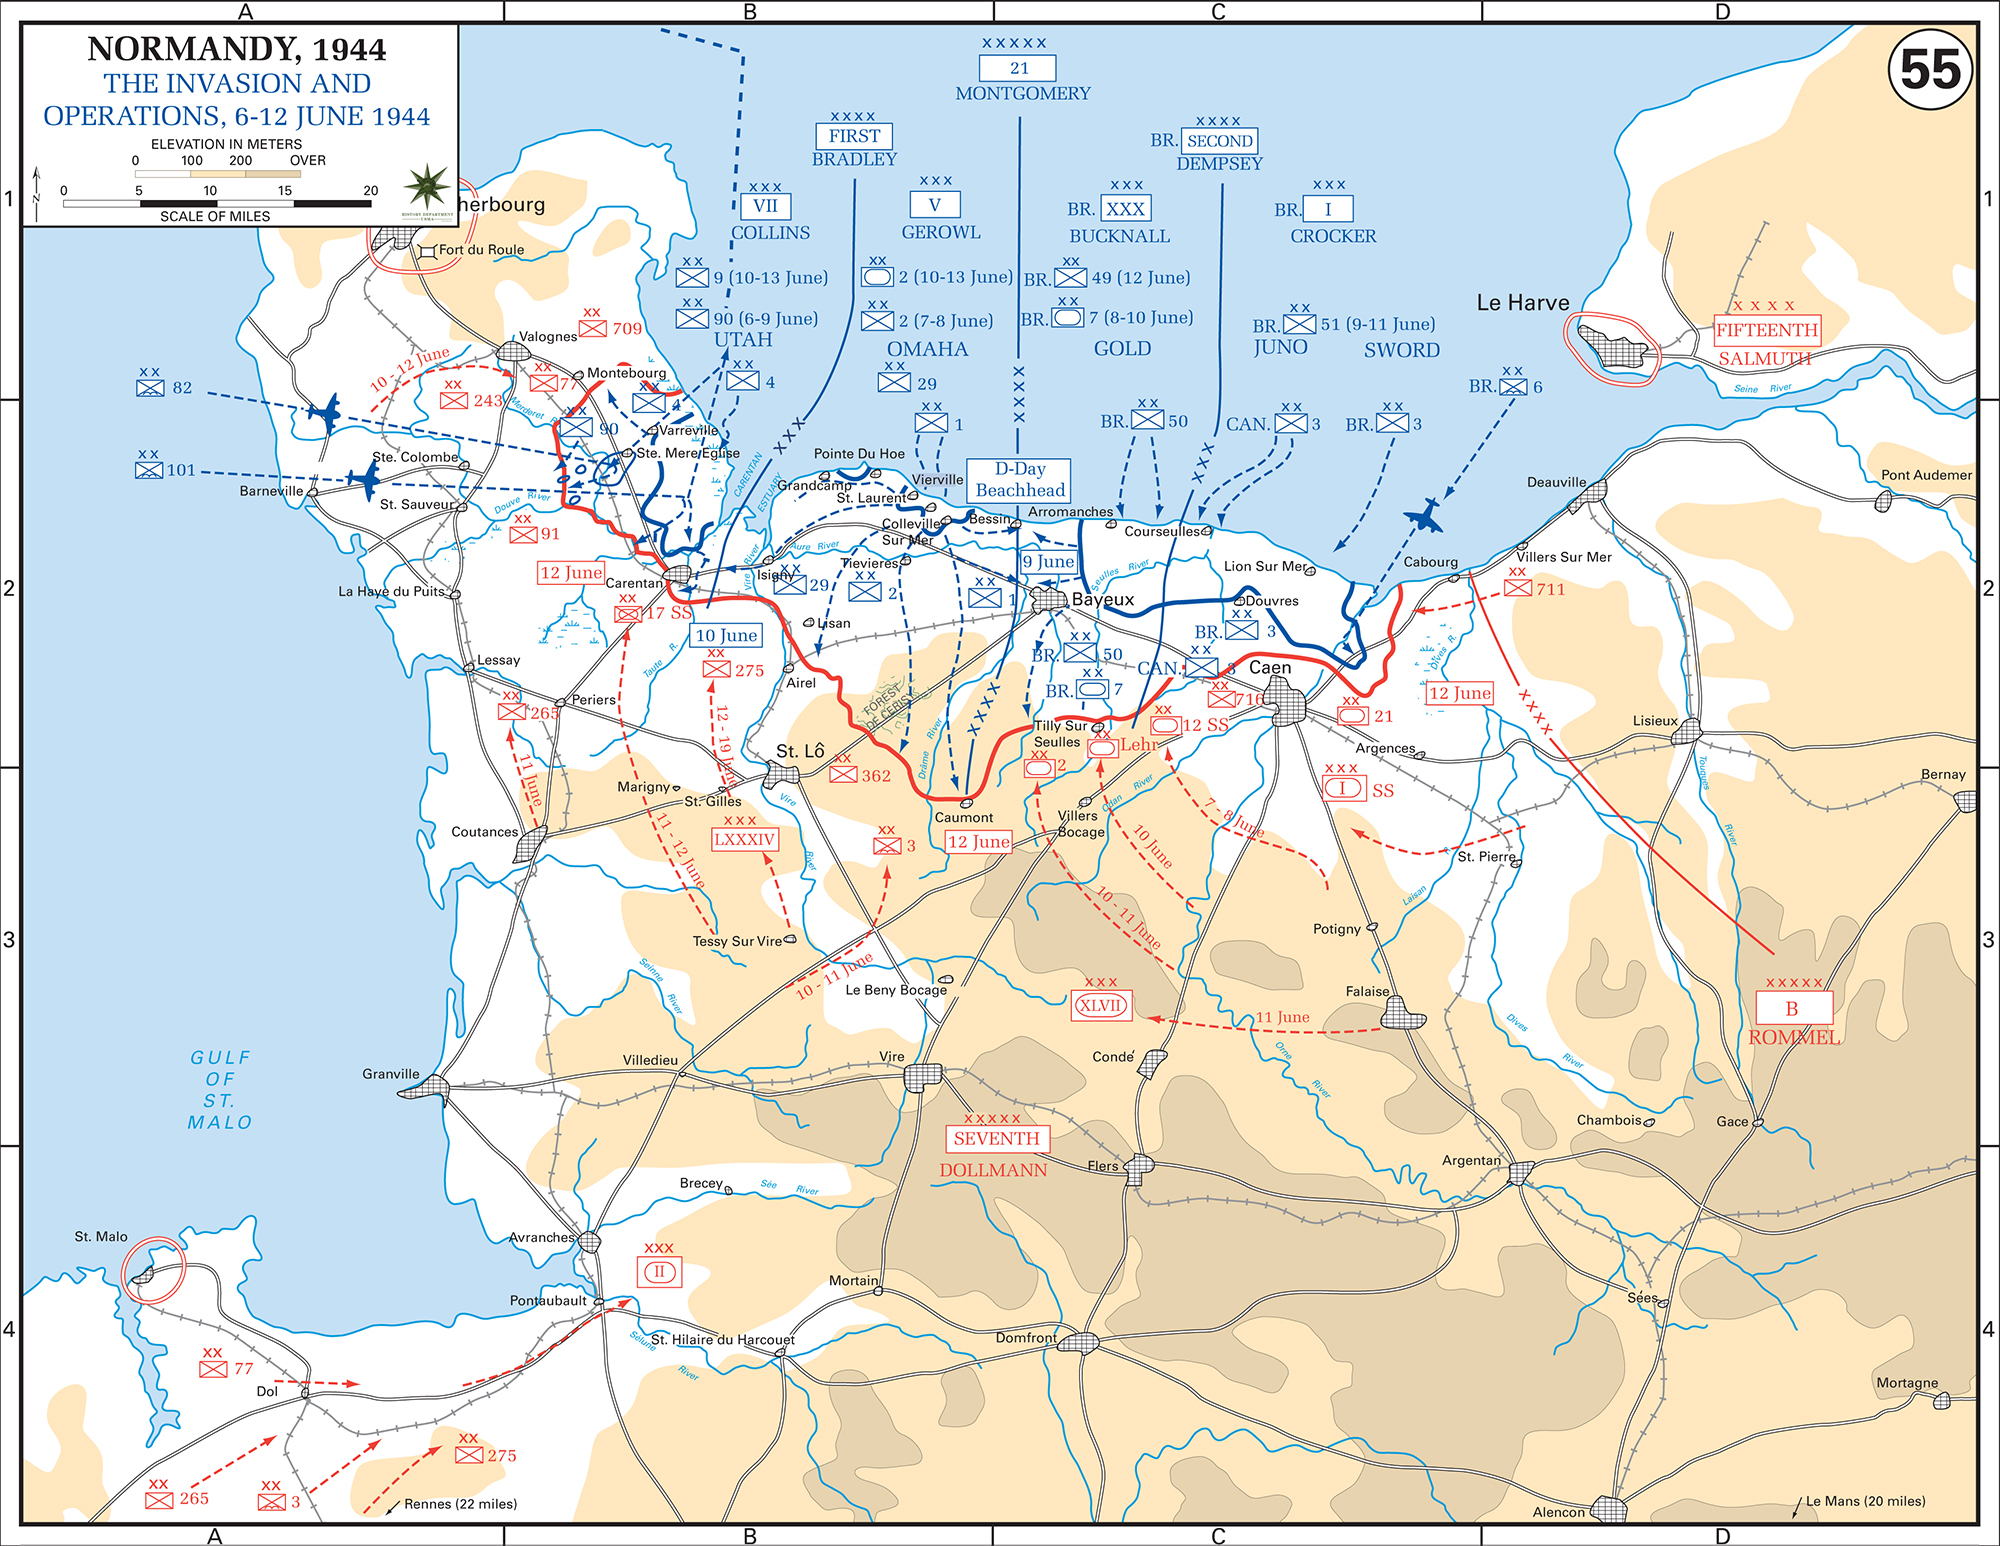 Map of WWII: Normandy Invasion June 6-12, 1944